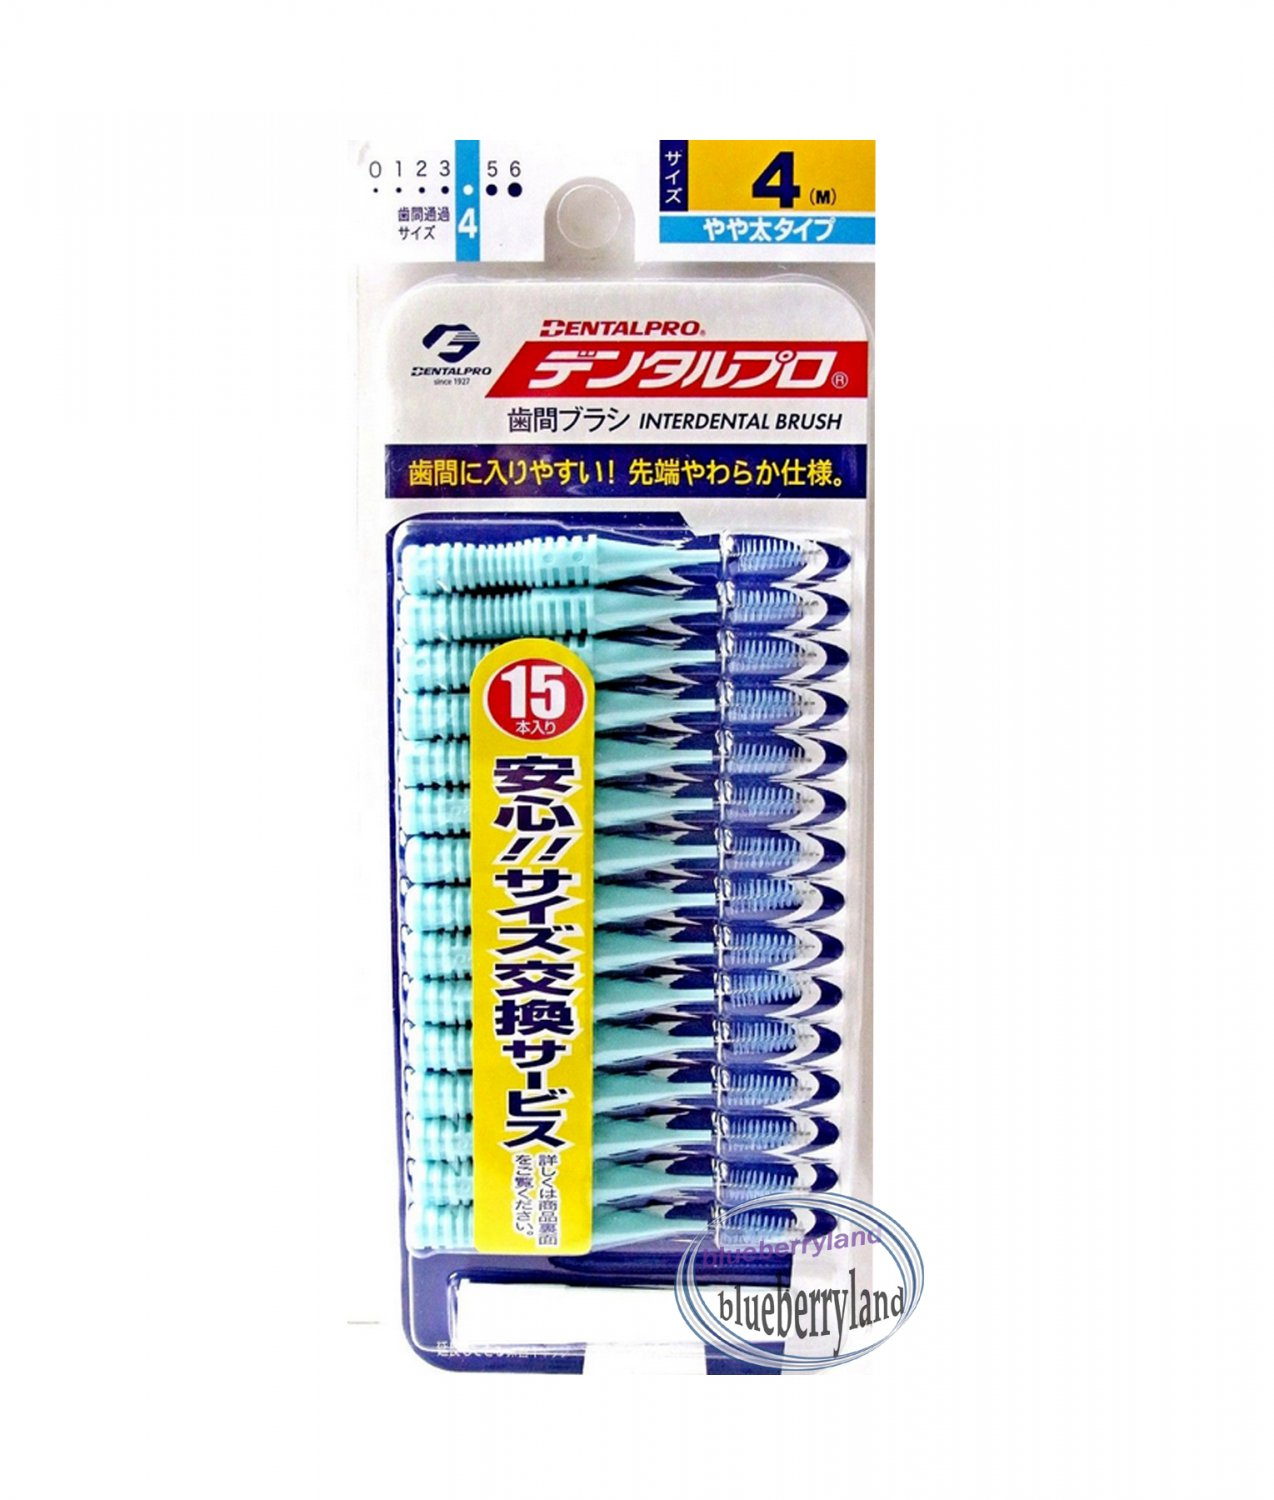 Dentalpro Interdental Brush Size 4 M (1.2mm) Oral Floss Flossers 15 pcs  Oral Care